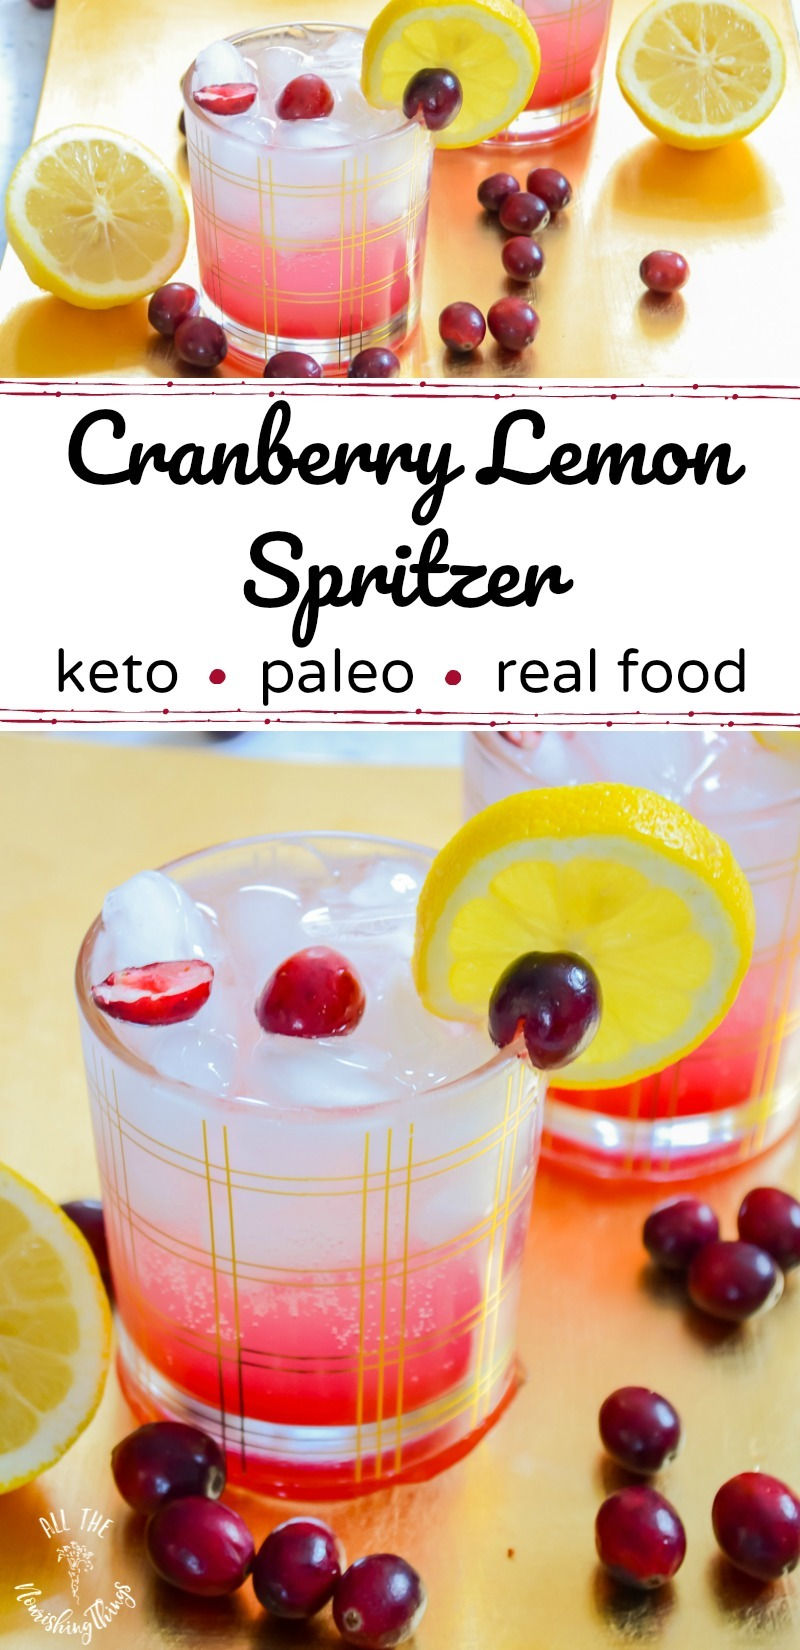 keto cranberry lemon spritzer drink with text overlay